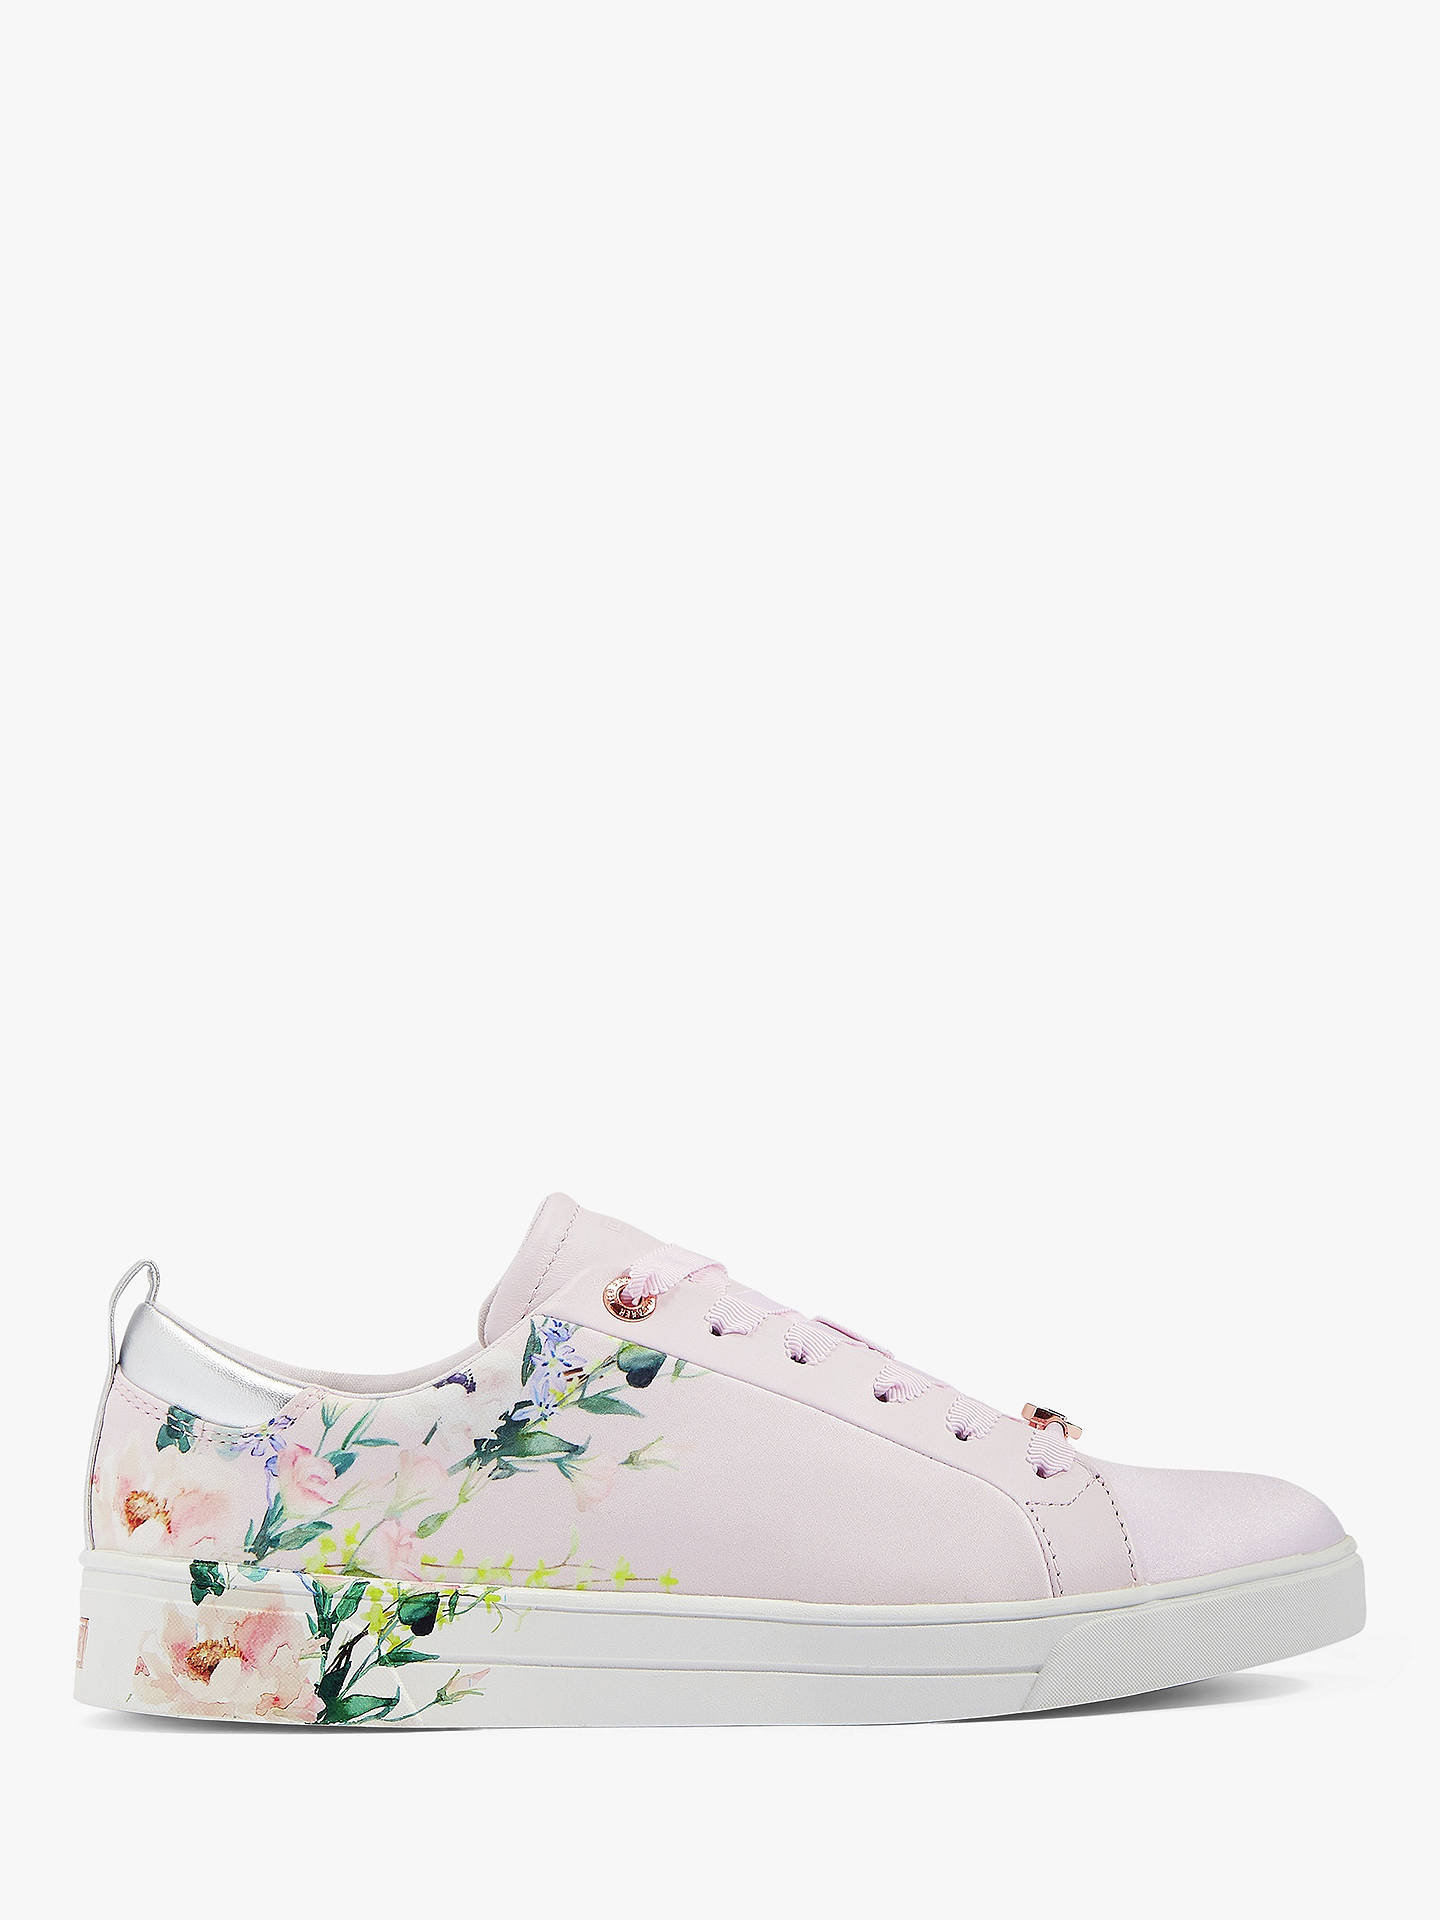 8388abf39b7 Buy Ted Baker Rialy Printed Tennis Trainers, Light Pink, 4 Online at  johnlewis.